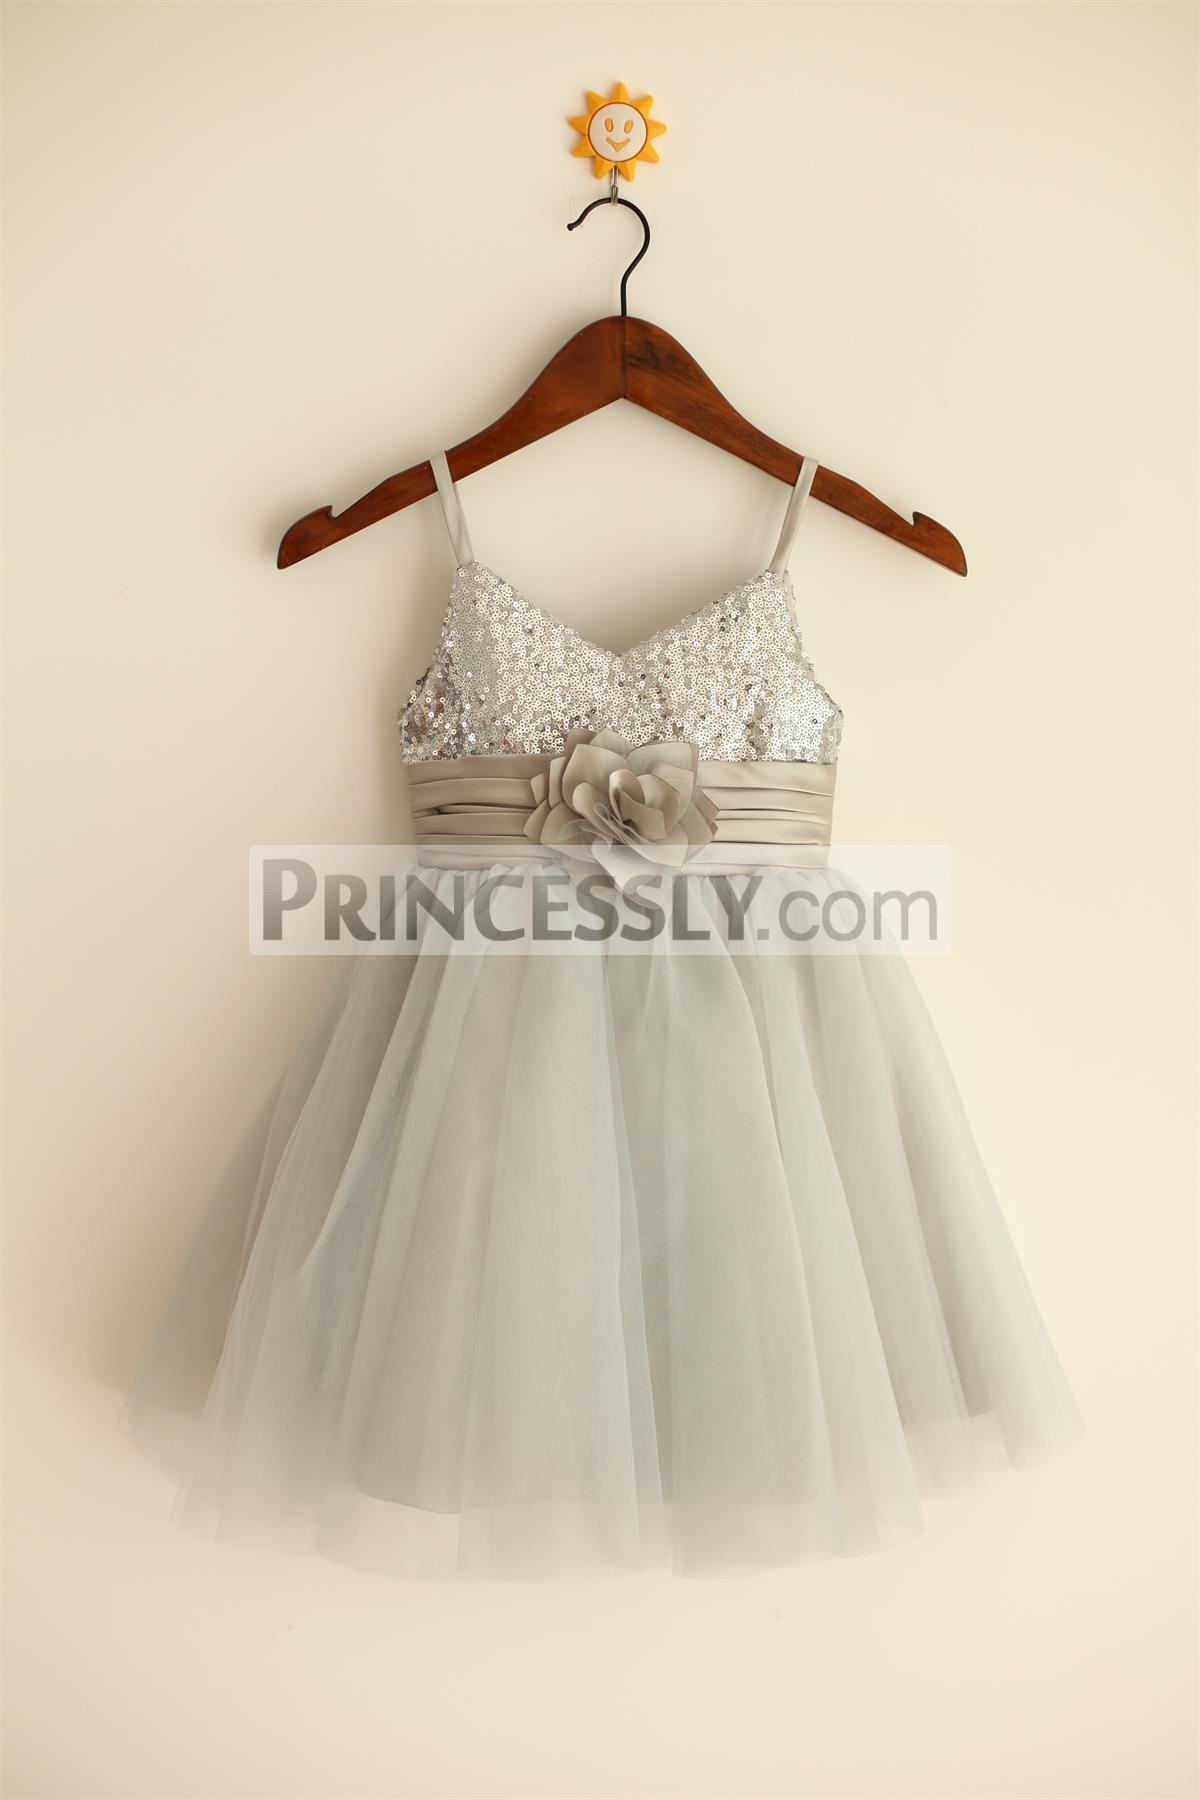 Spaghetti straps silver sequins gray tulle flower girl dress